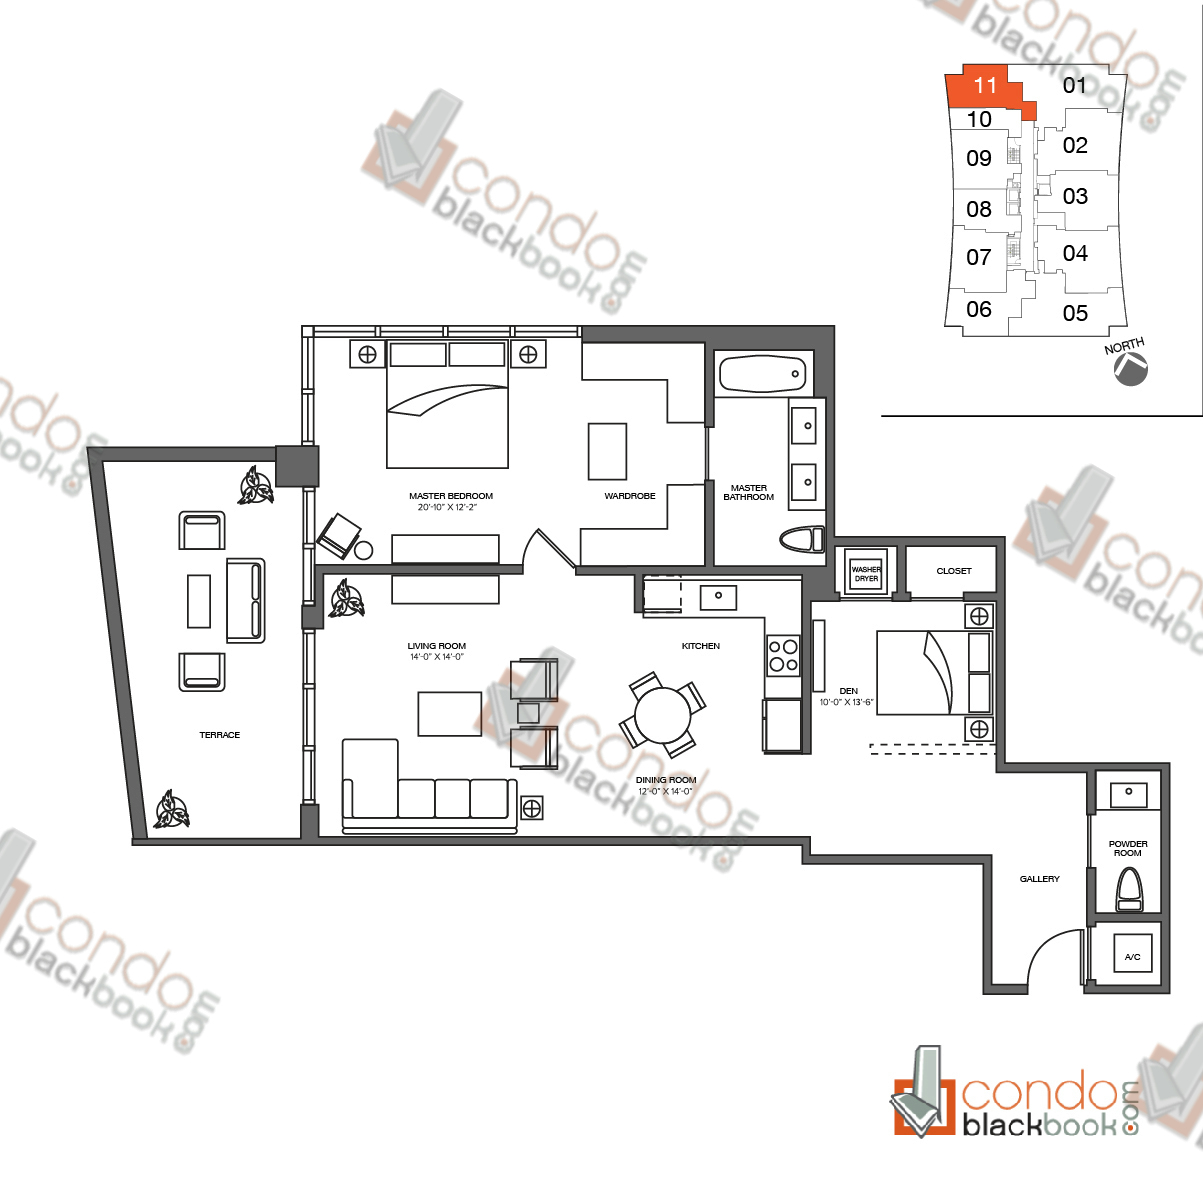 Floor plan for 1010 Brickell Brickell Miami, model B, line 11, 1/1.5 + den bedrooms, 1,260 sq ft